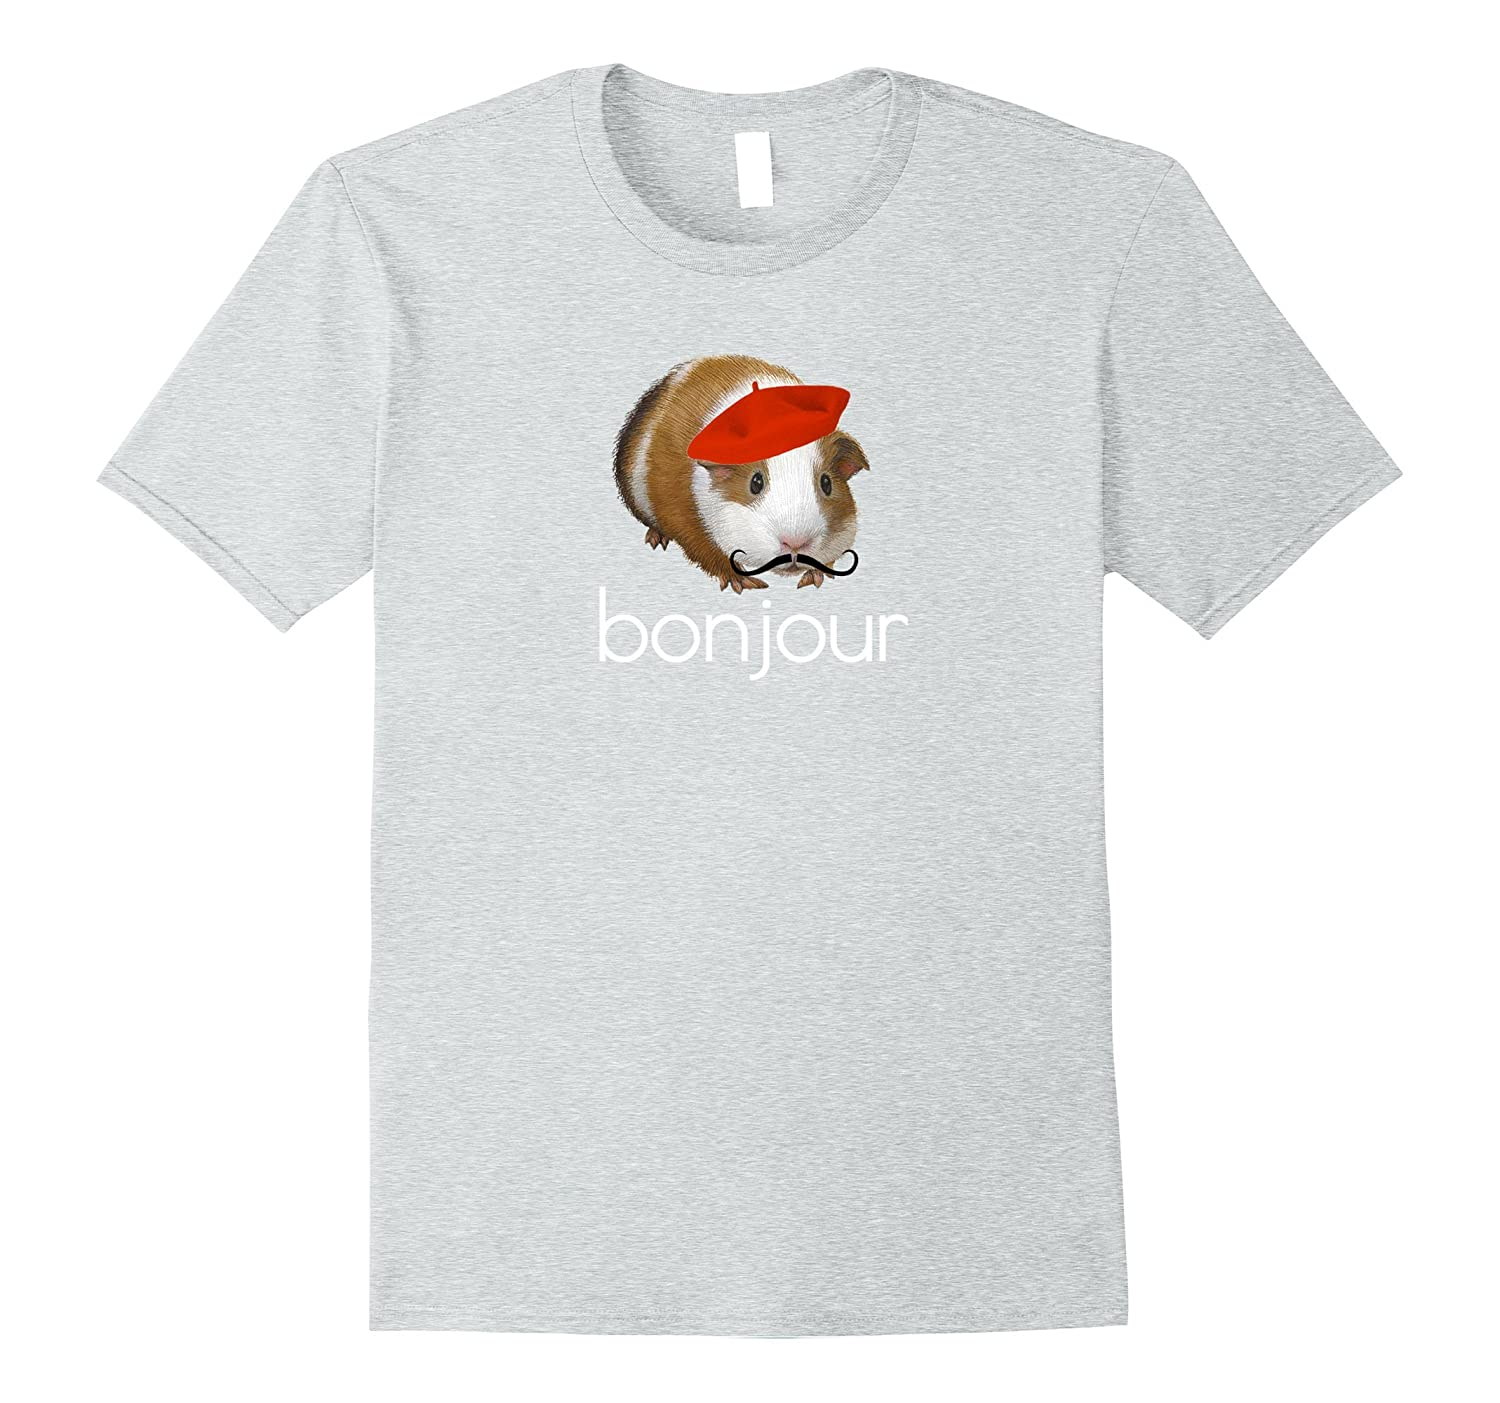 Bonjour French Guinea Pig Hello Statement T Shirt Th